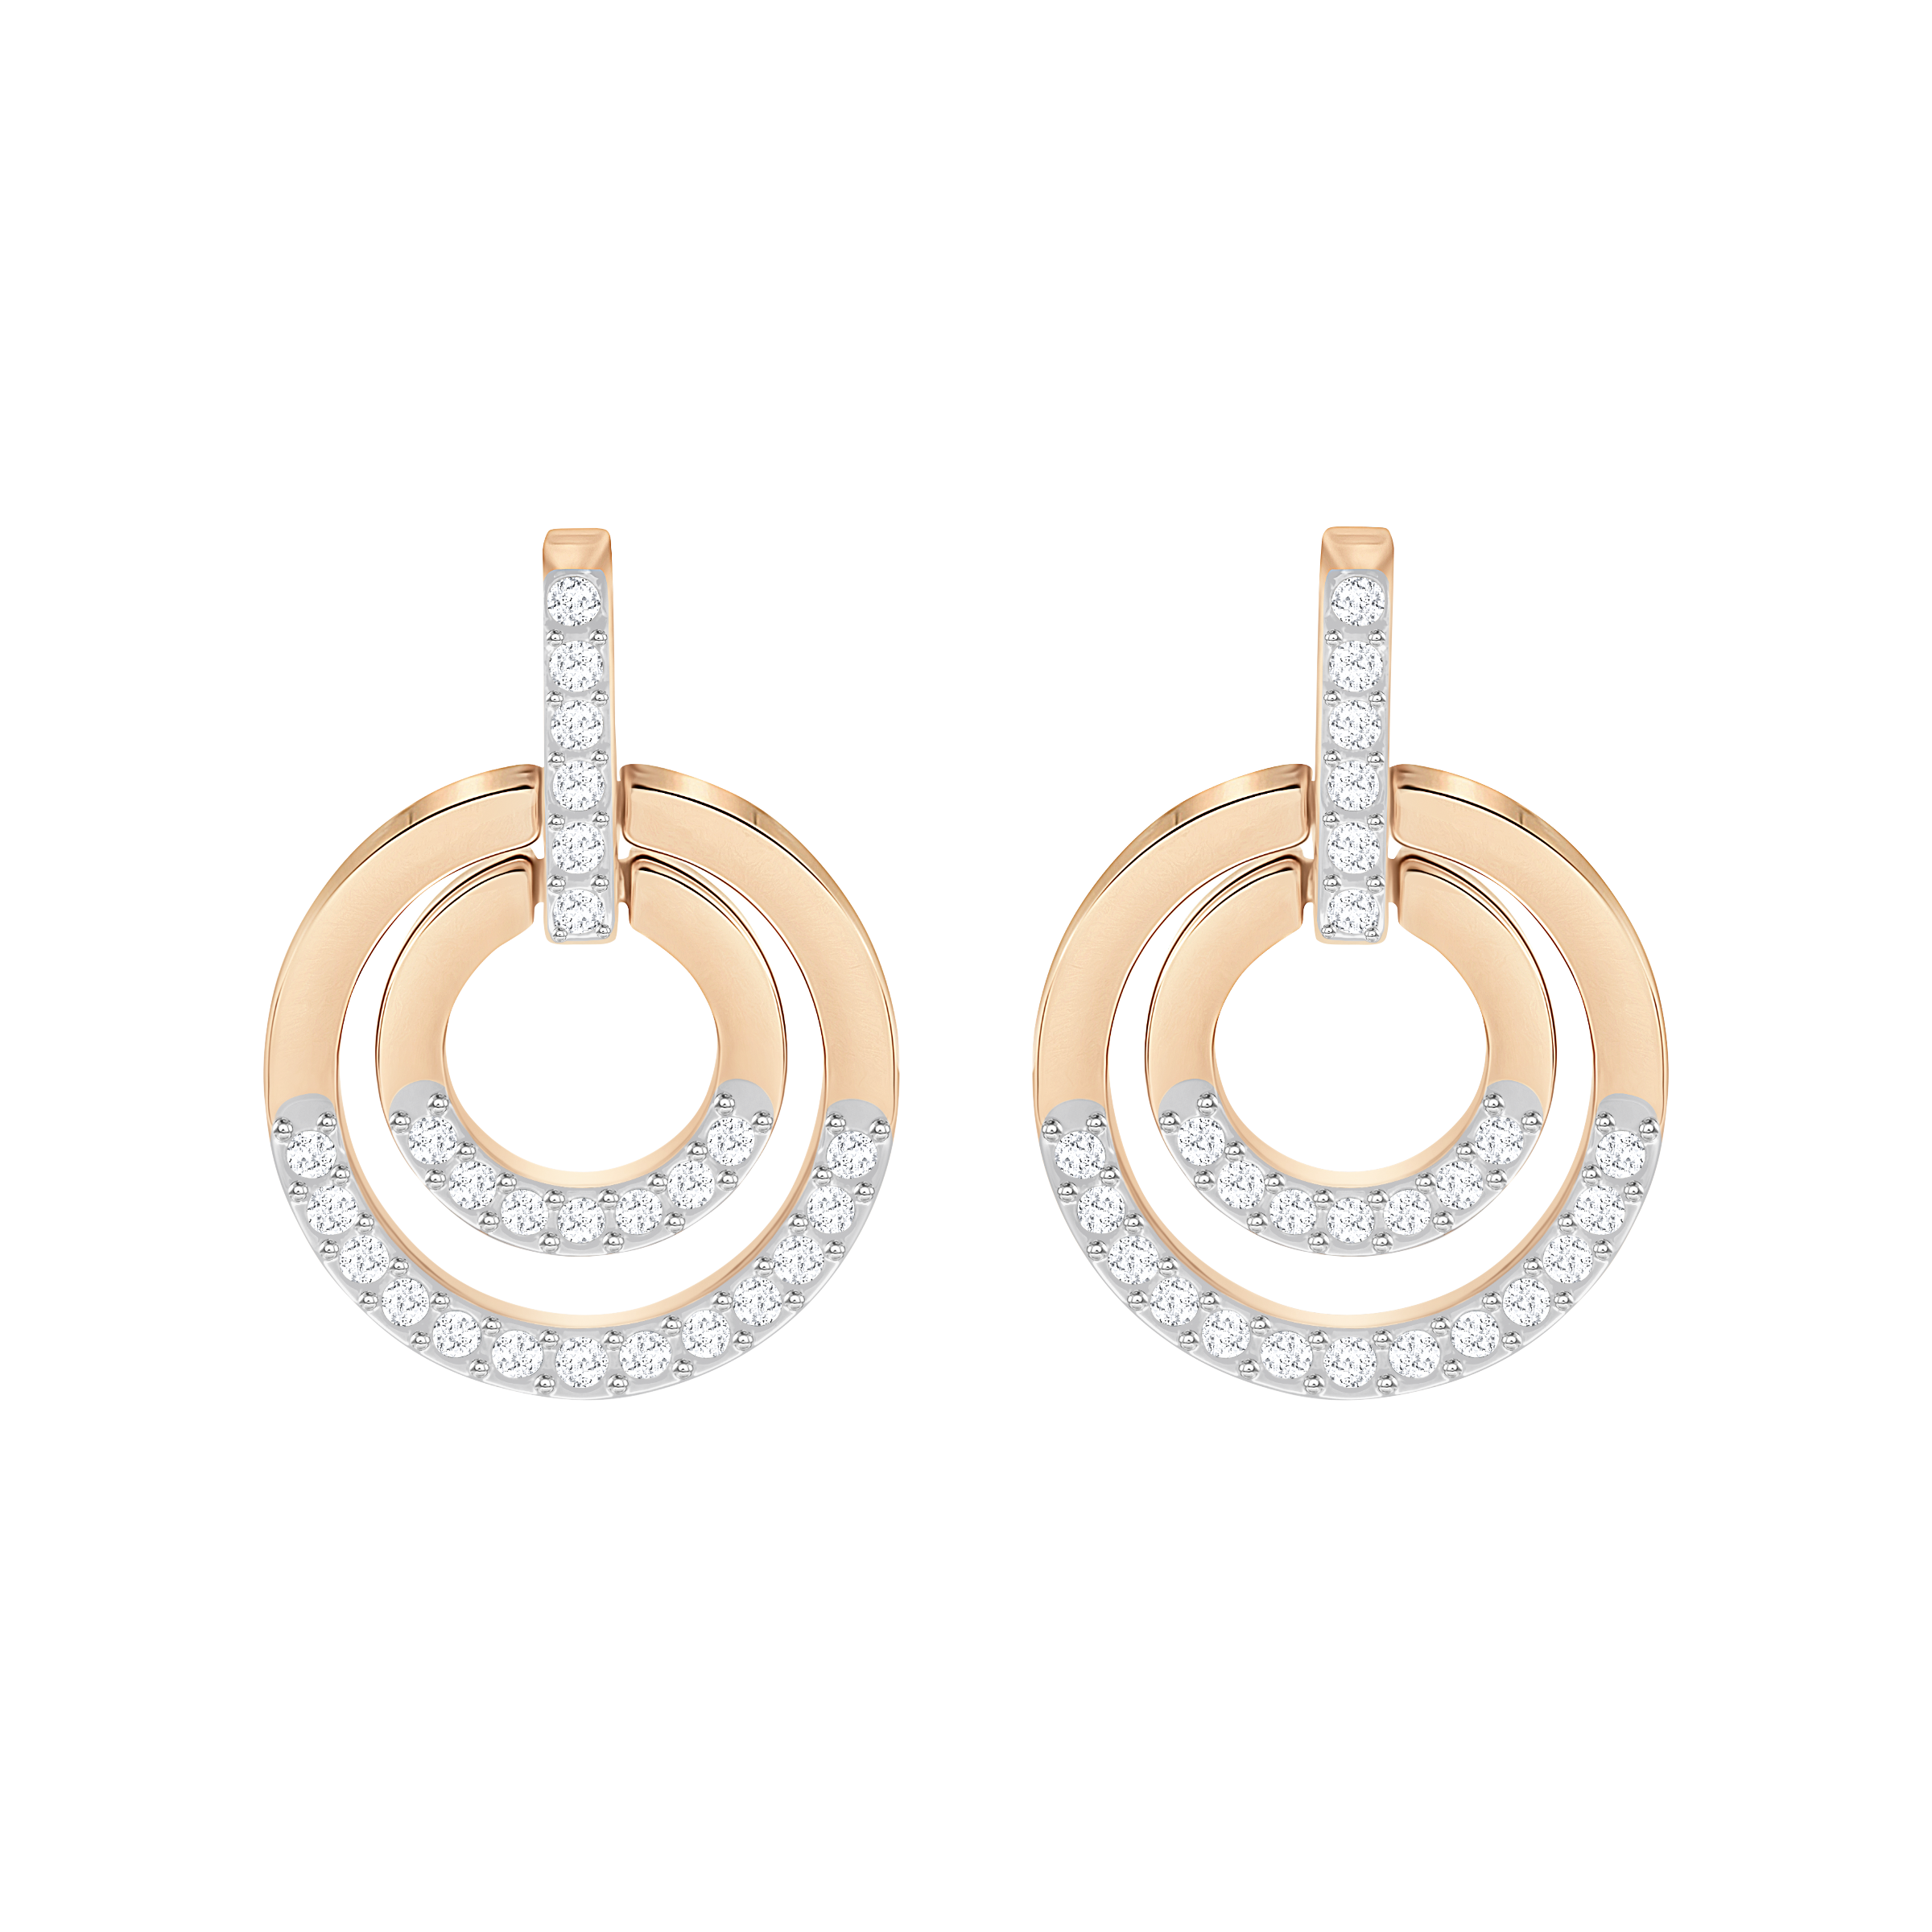 Circle Pierced Earrings, White, Rose-gold tone plated